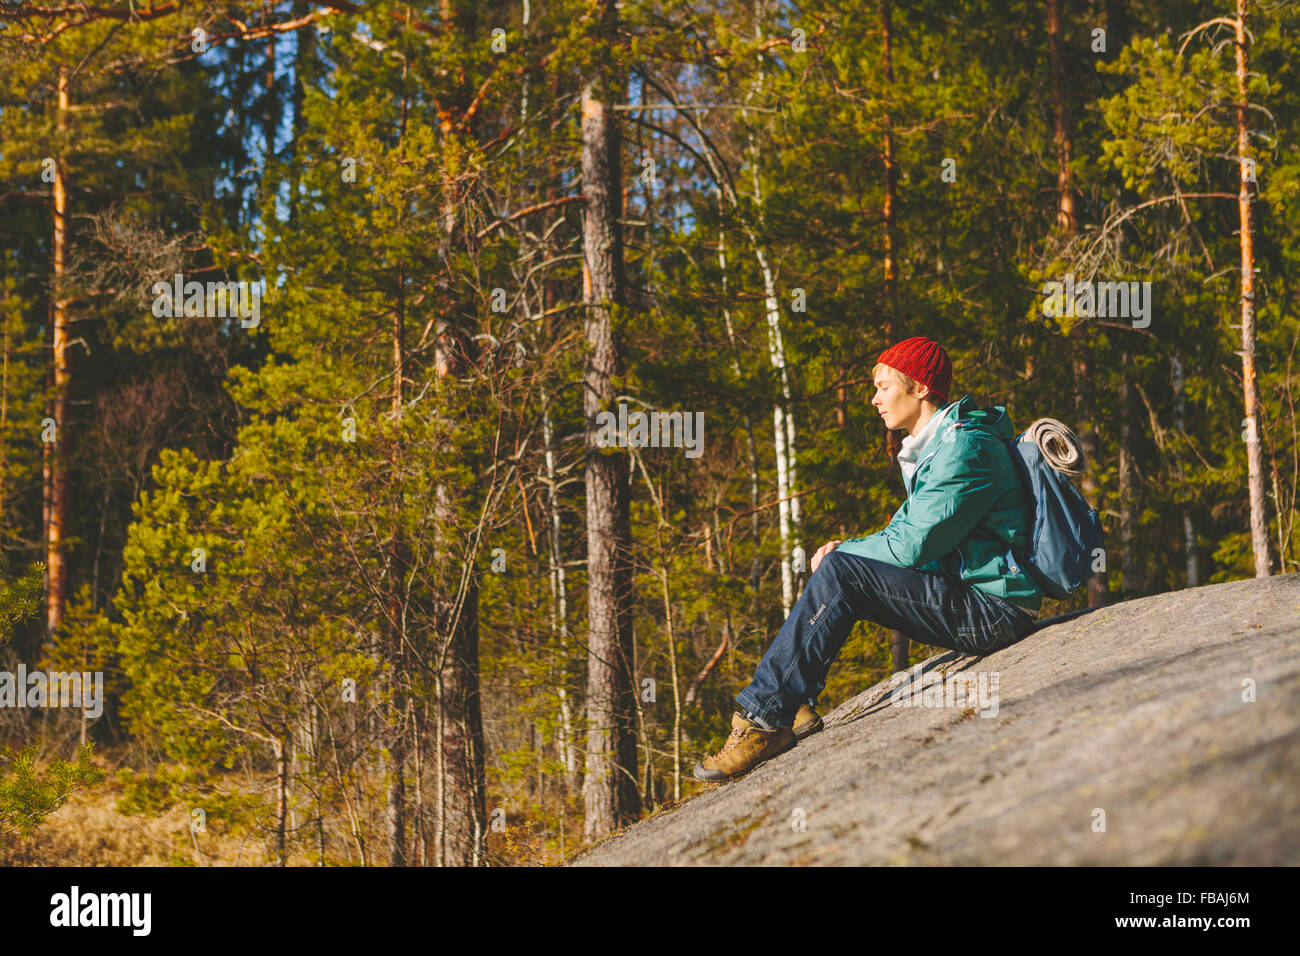 Finland, Esbo, Kvarntrask, Young man sitting on stone surface in forest - Stock Image